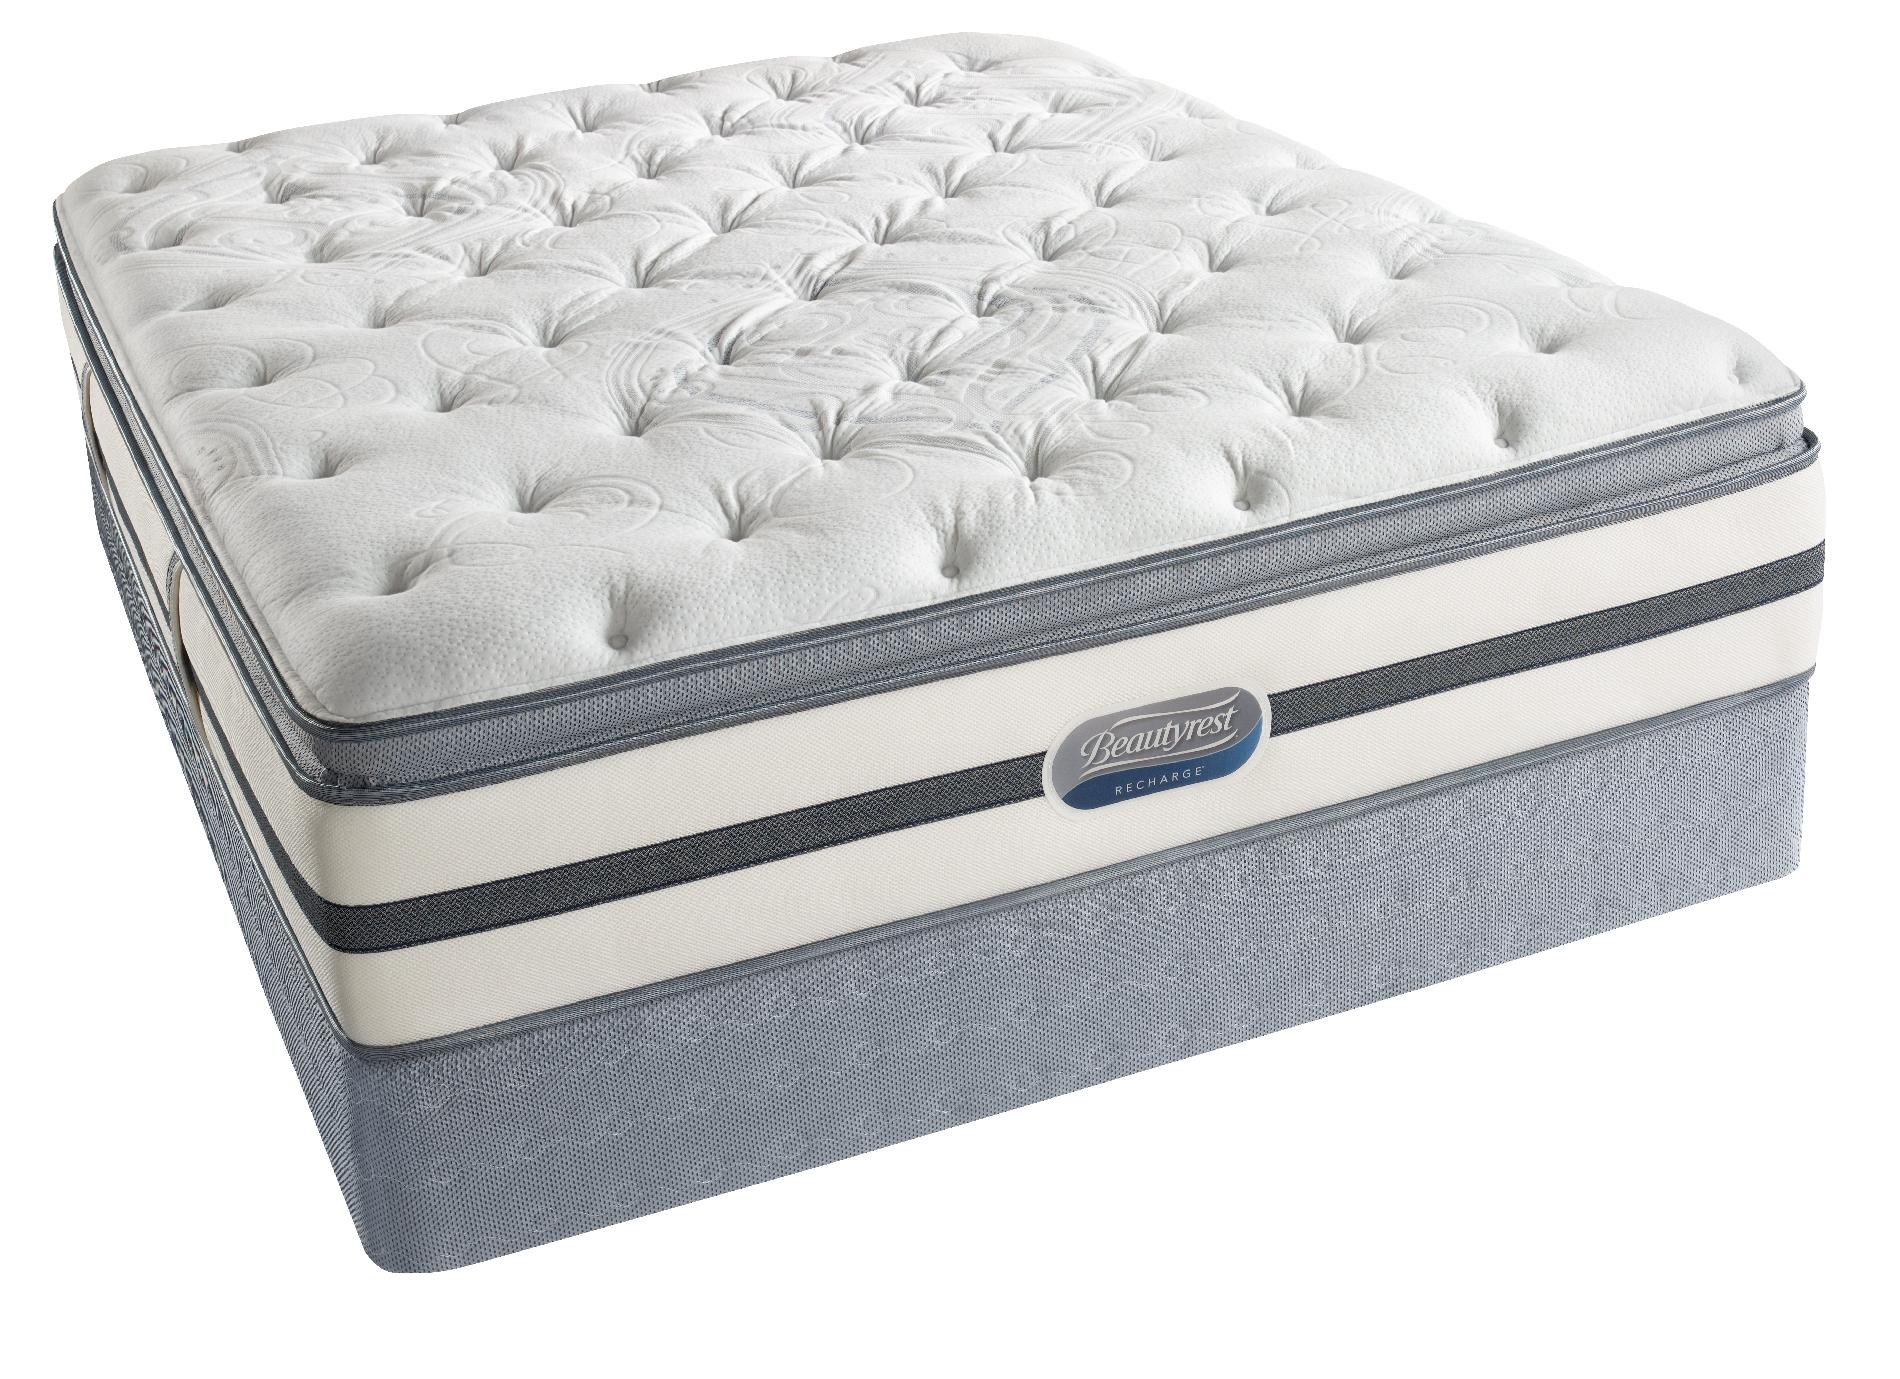 Baby Mattress Kmart Beautyrest Firm Queen Innerspring Mattress Find The Best